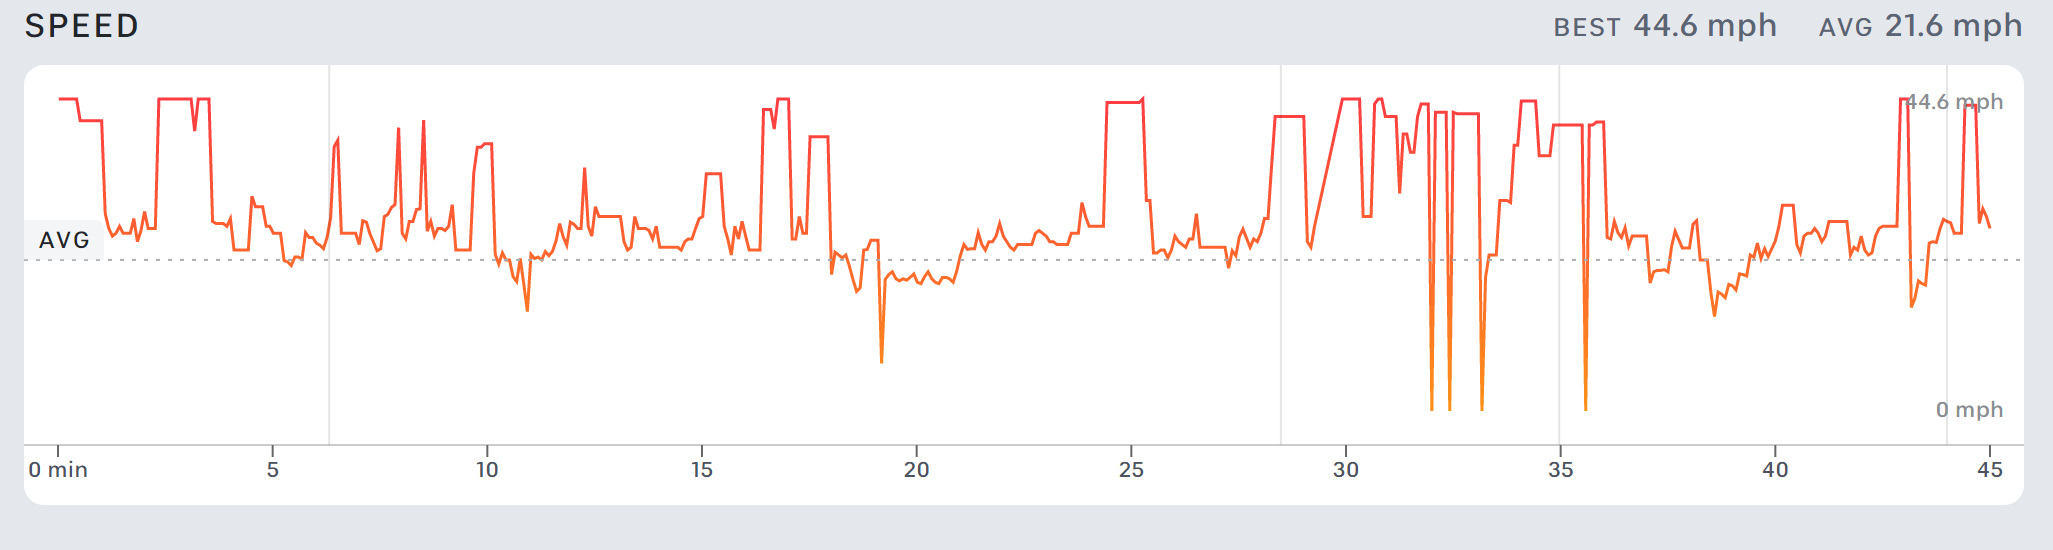 Speed graph from a 60-minute ride